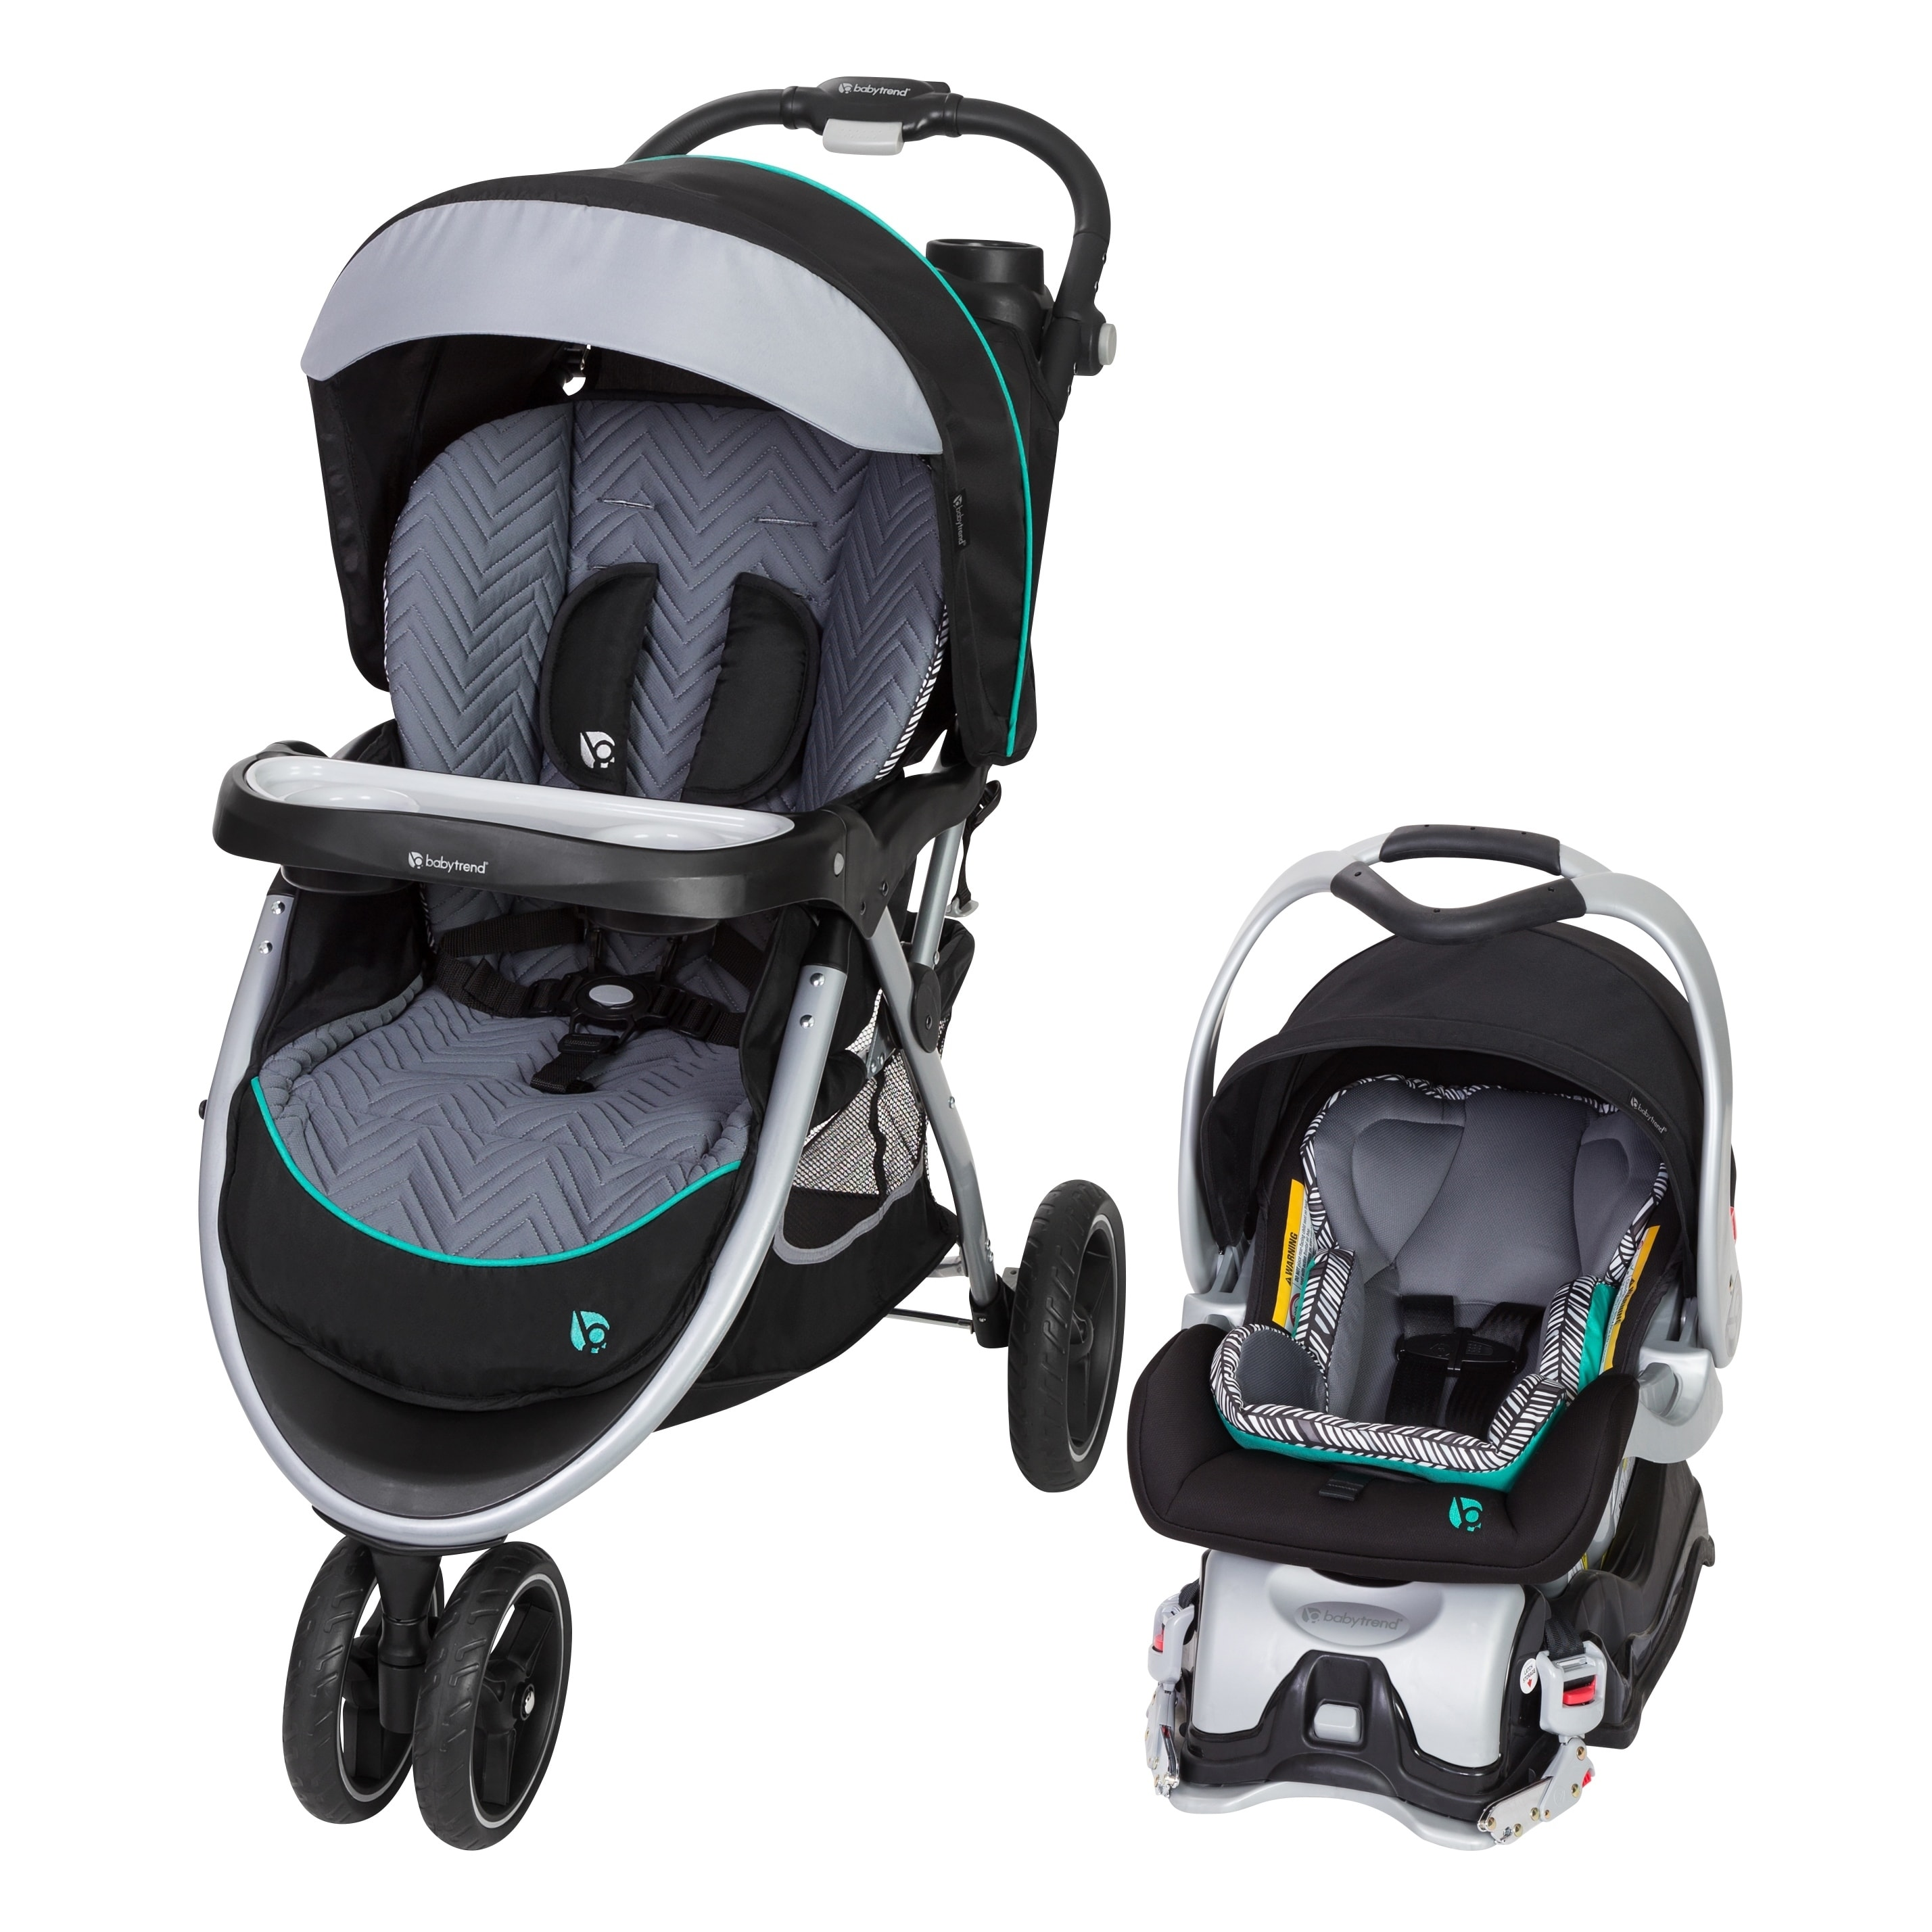 BABY TREND SKYVIEW PLUS TRAVEL SYSTEM - ZIGGY